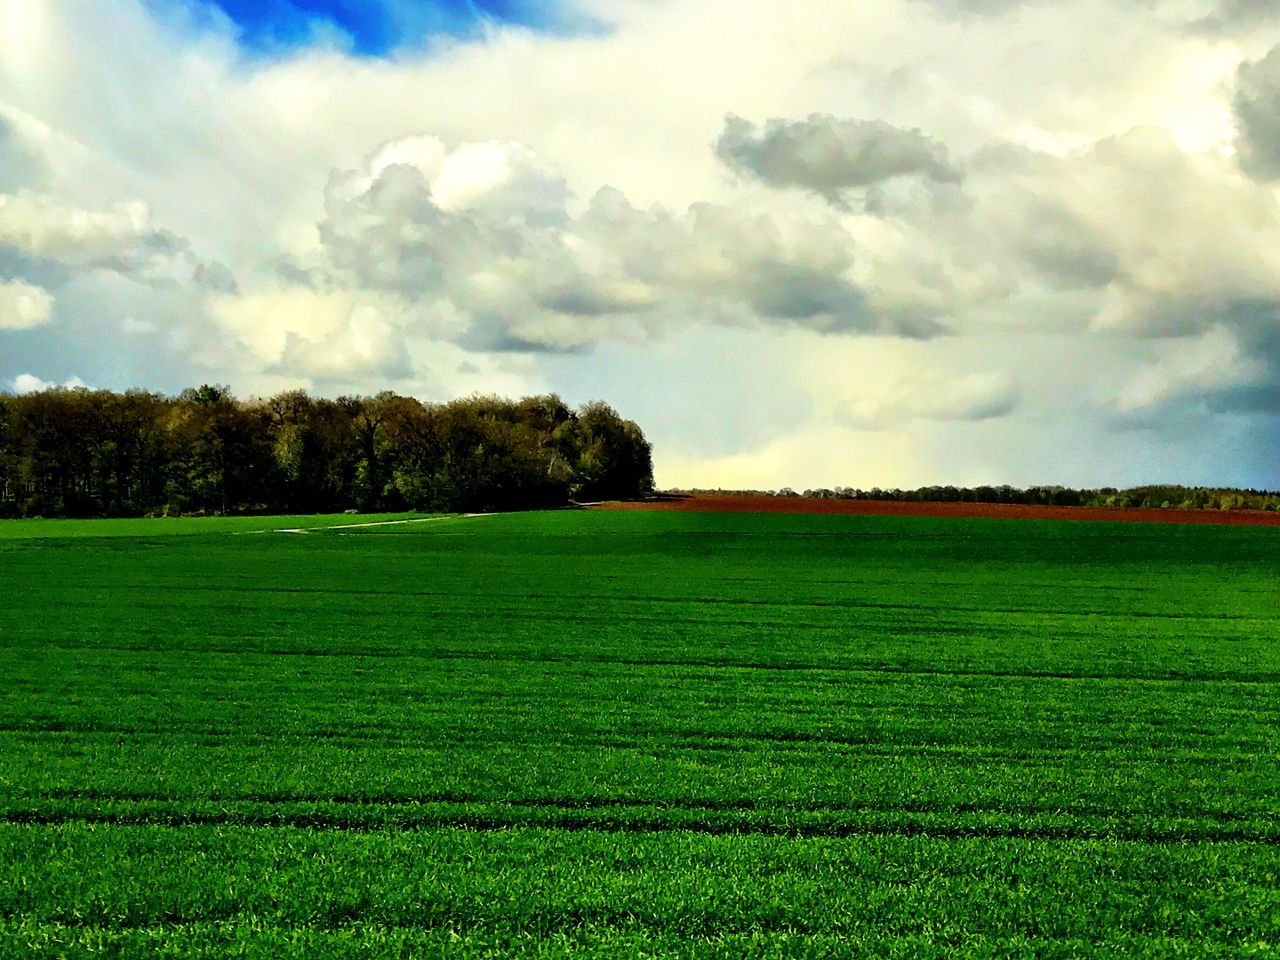 field, tranquility, agriculture, landscape, nature, tranquil scene, beauty in nature, sky, tree, growth, scenics, no people, grass, day, rural scene, cloud - sky, green color, outdoors